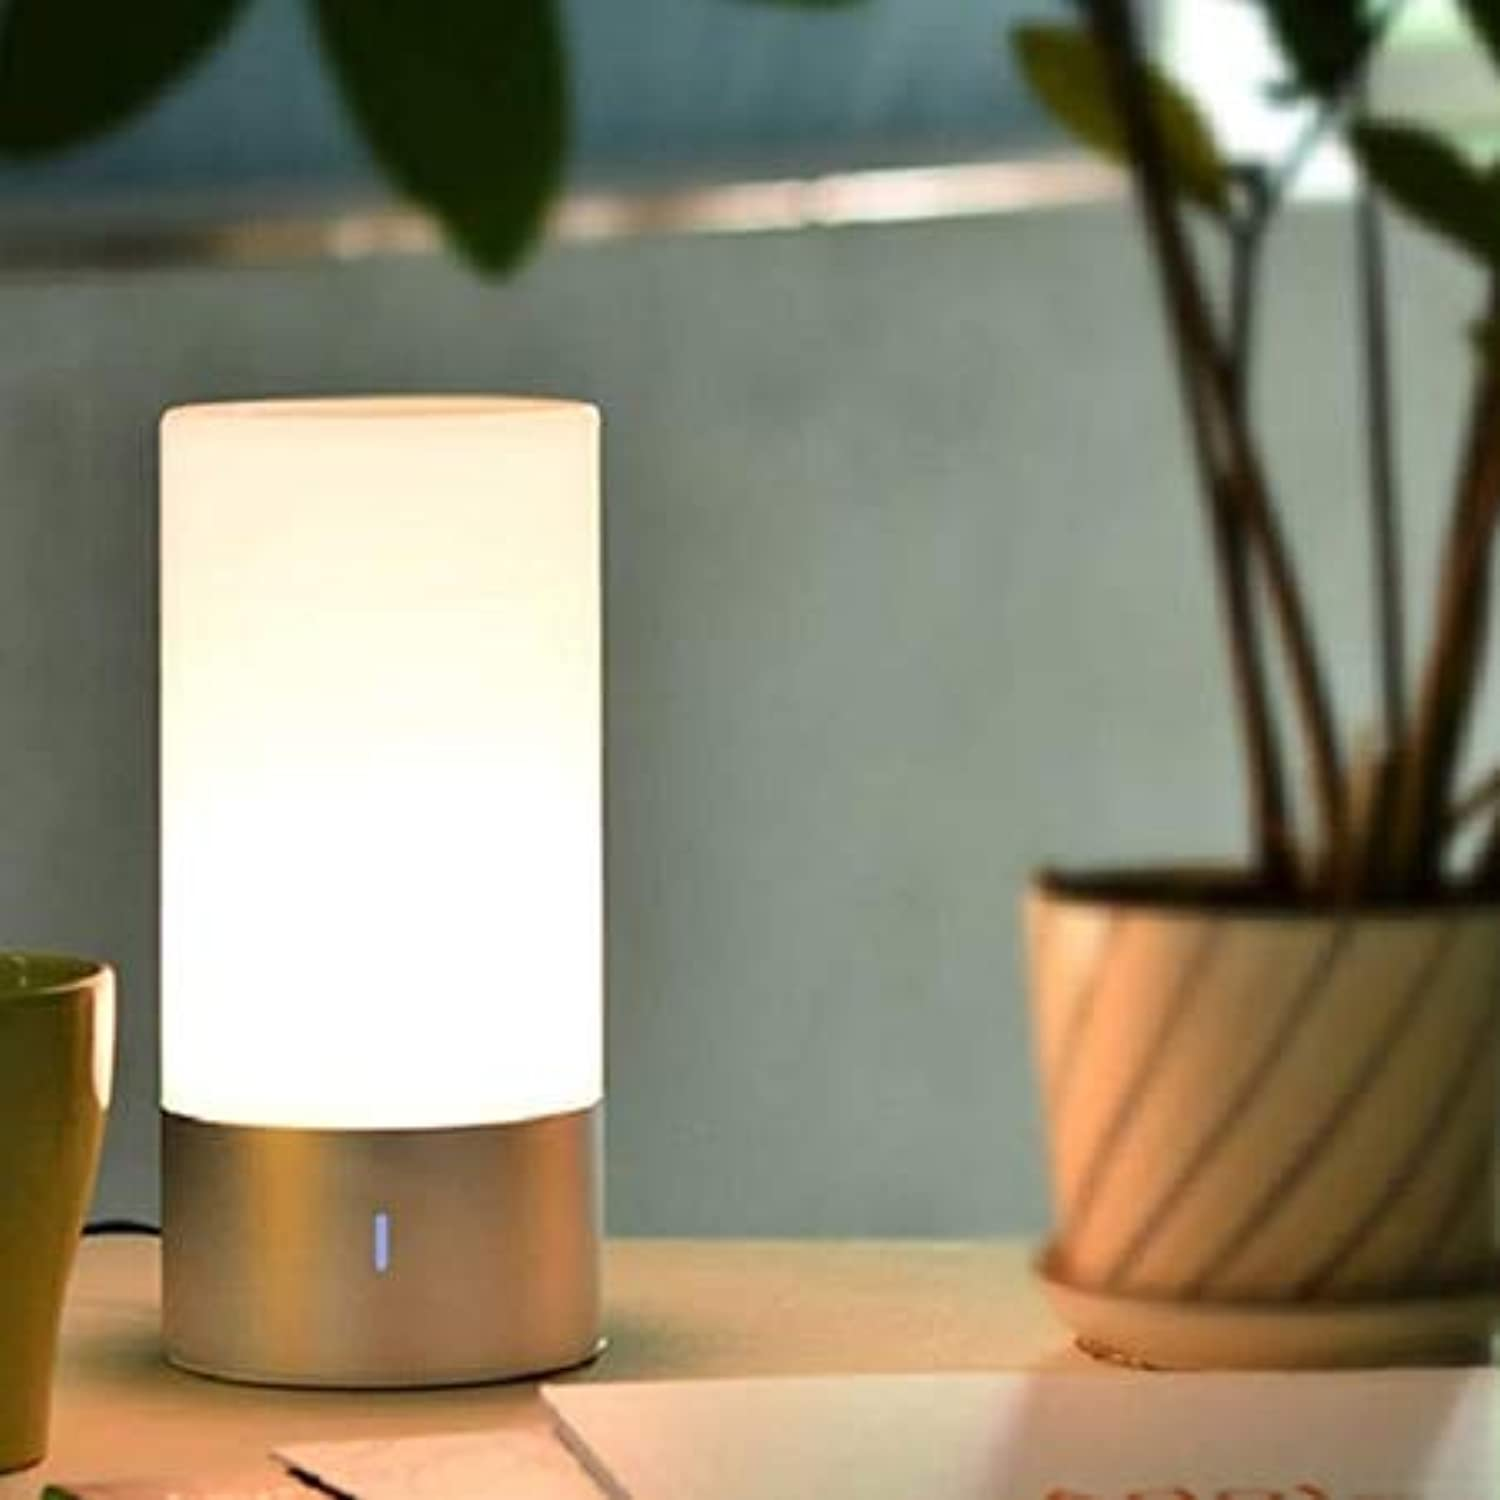 LIULINUIJ Dimmable Blautooth Speaker Bedside Lamp 16 Million Farbe   360-Degree Touch Sensing Smart Night Lights For Bedroom